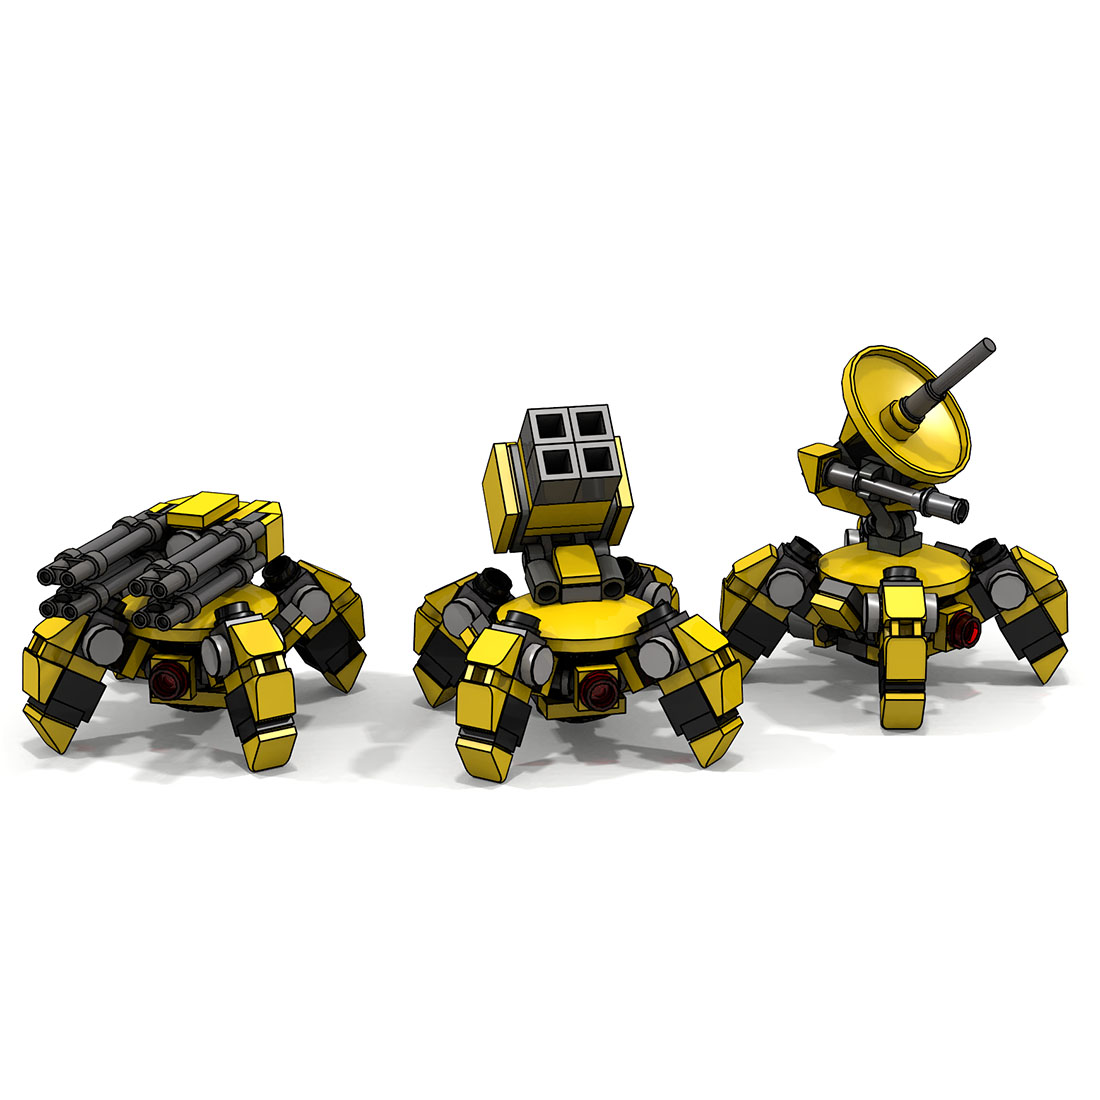 MOC Mini Multi-legged Trouble-maker Model Small Particle Building Blocks Educational Toy Set Boy Christmas Birthday Gift